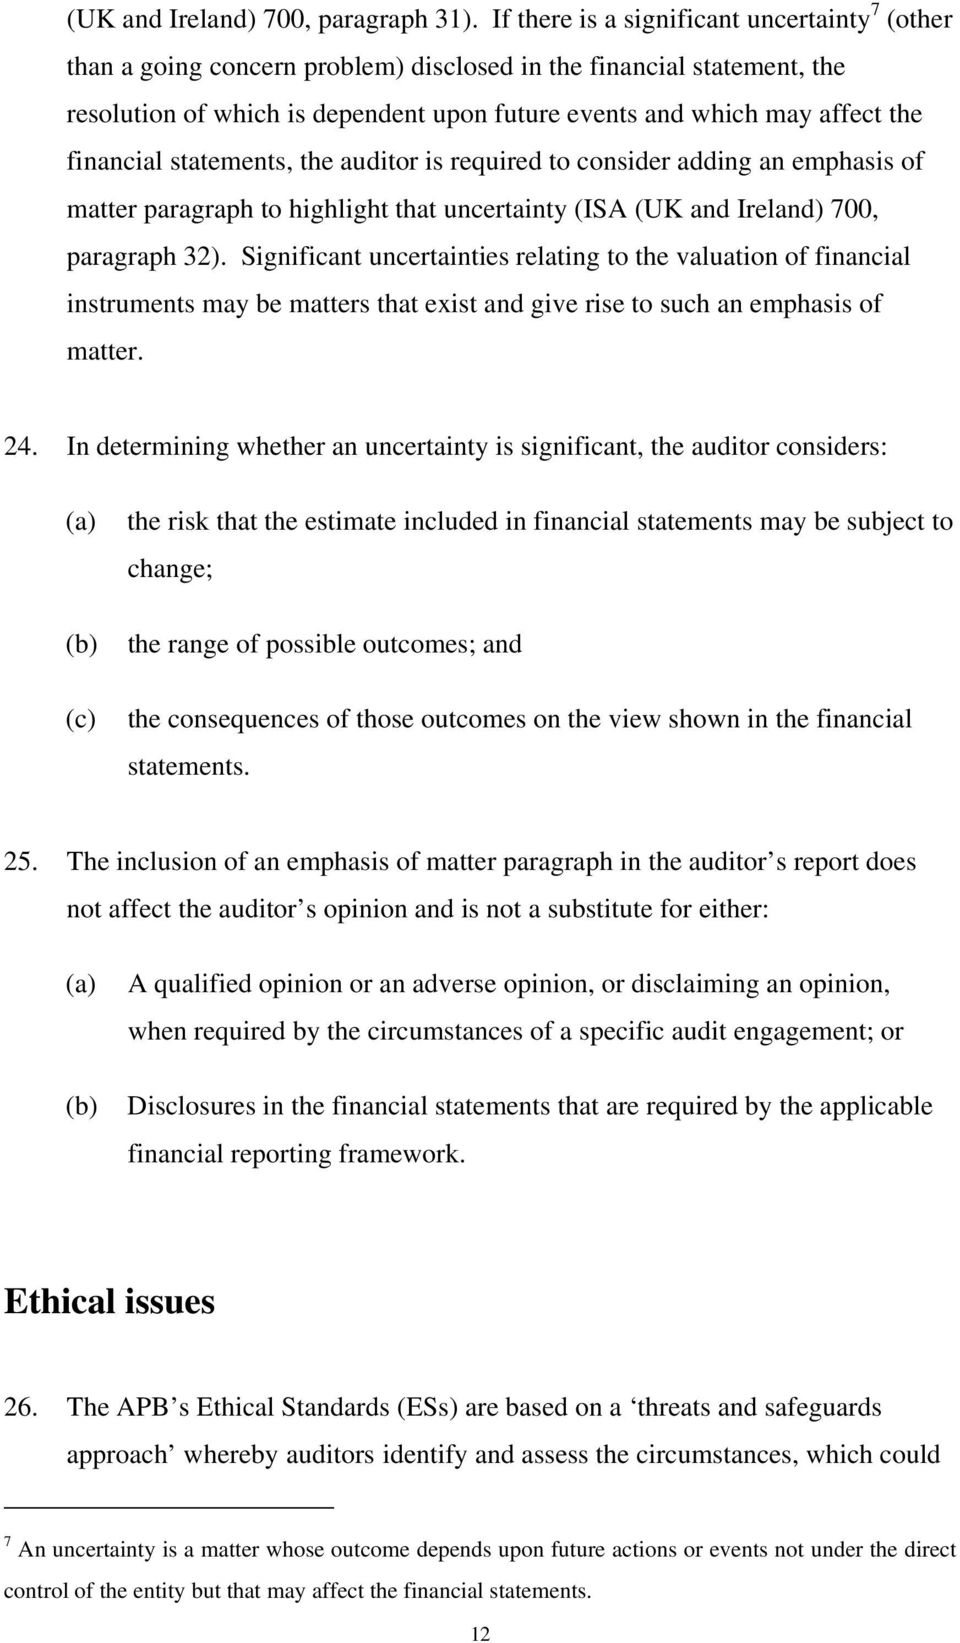 financial statements, the auditor is required to consider adding an emphasis of matter paragraph to highlight that uncertainty (ISA (UK and Ireland) 700, paragraph 32).